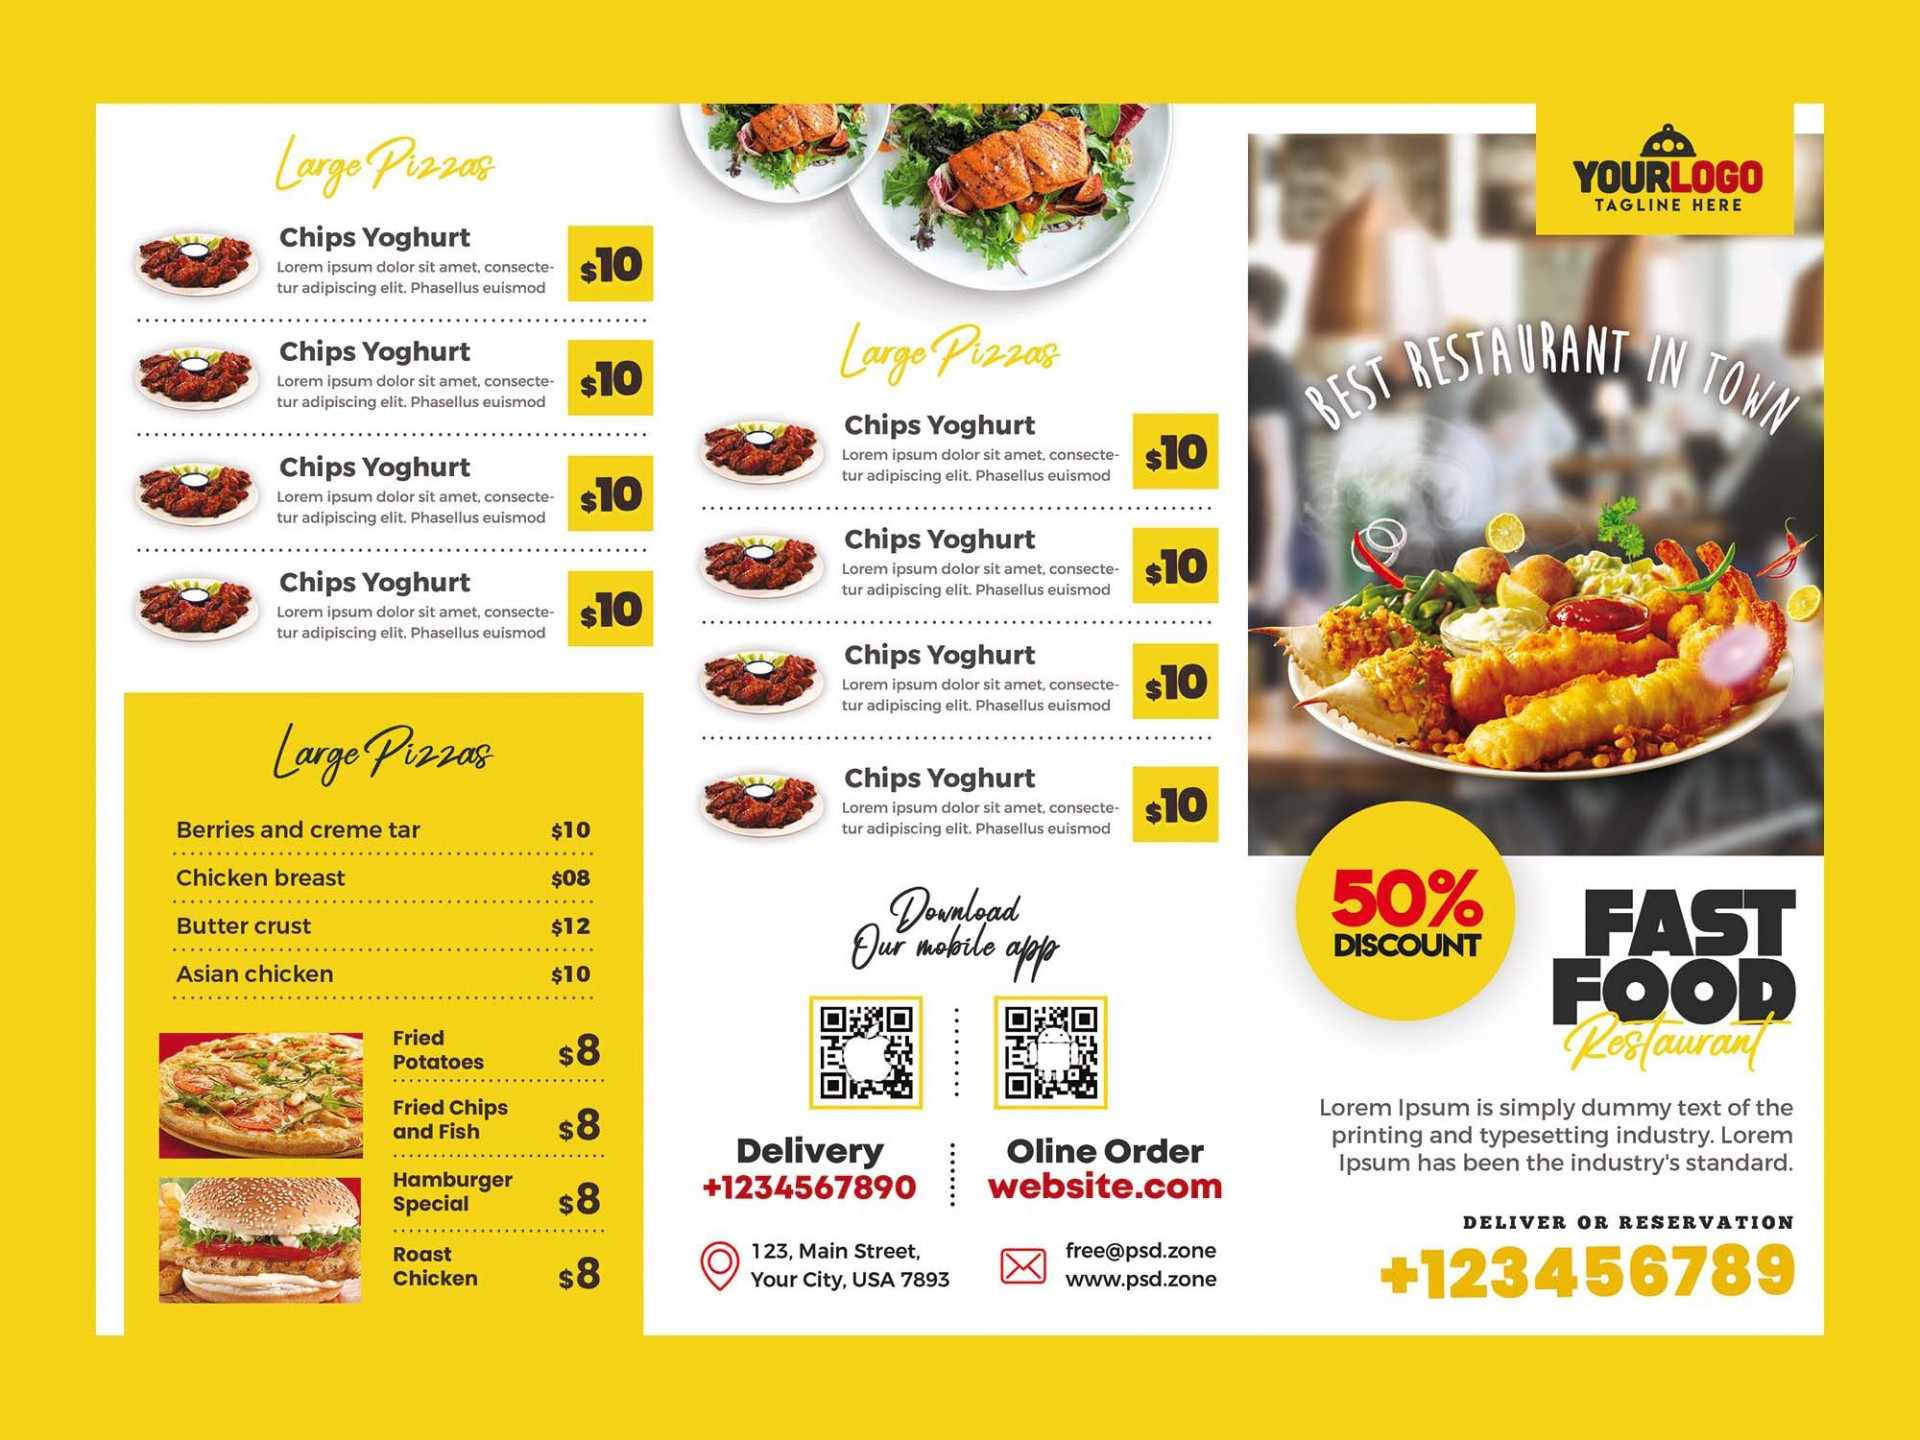 007 Beautiful Tri Fold Menu Template Free Idea  Wedding Tri-fold Restaurant Food Psd Brochure Cafe Download1920